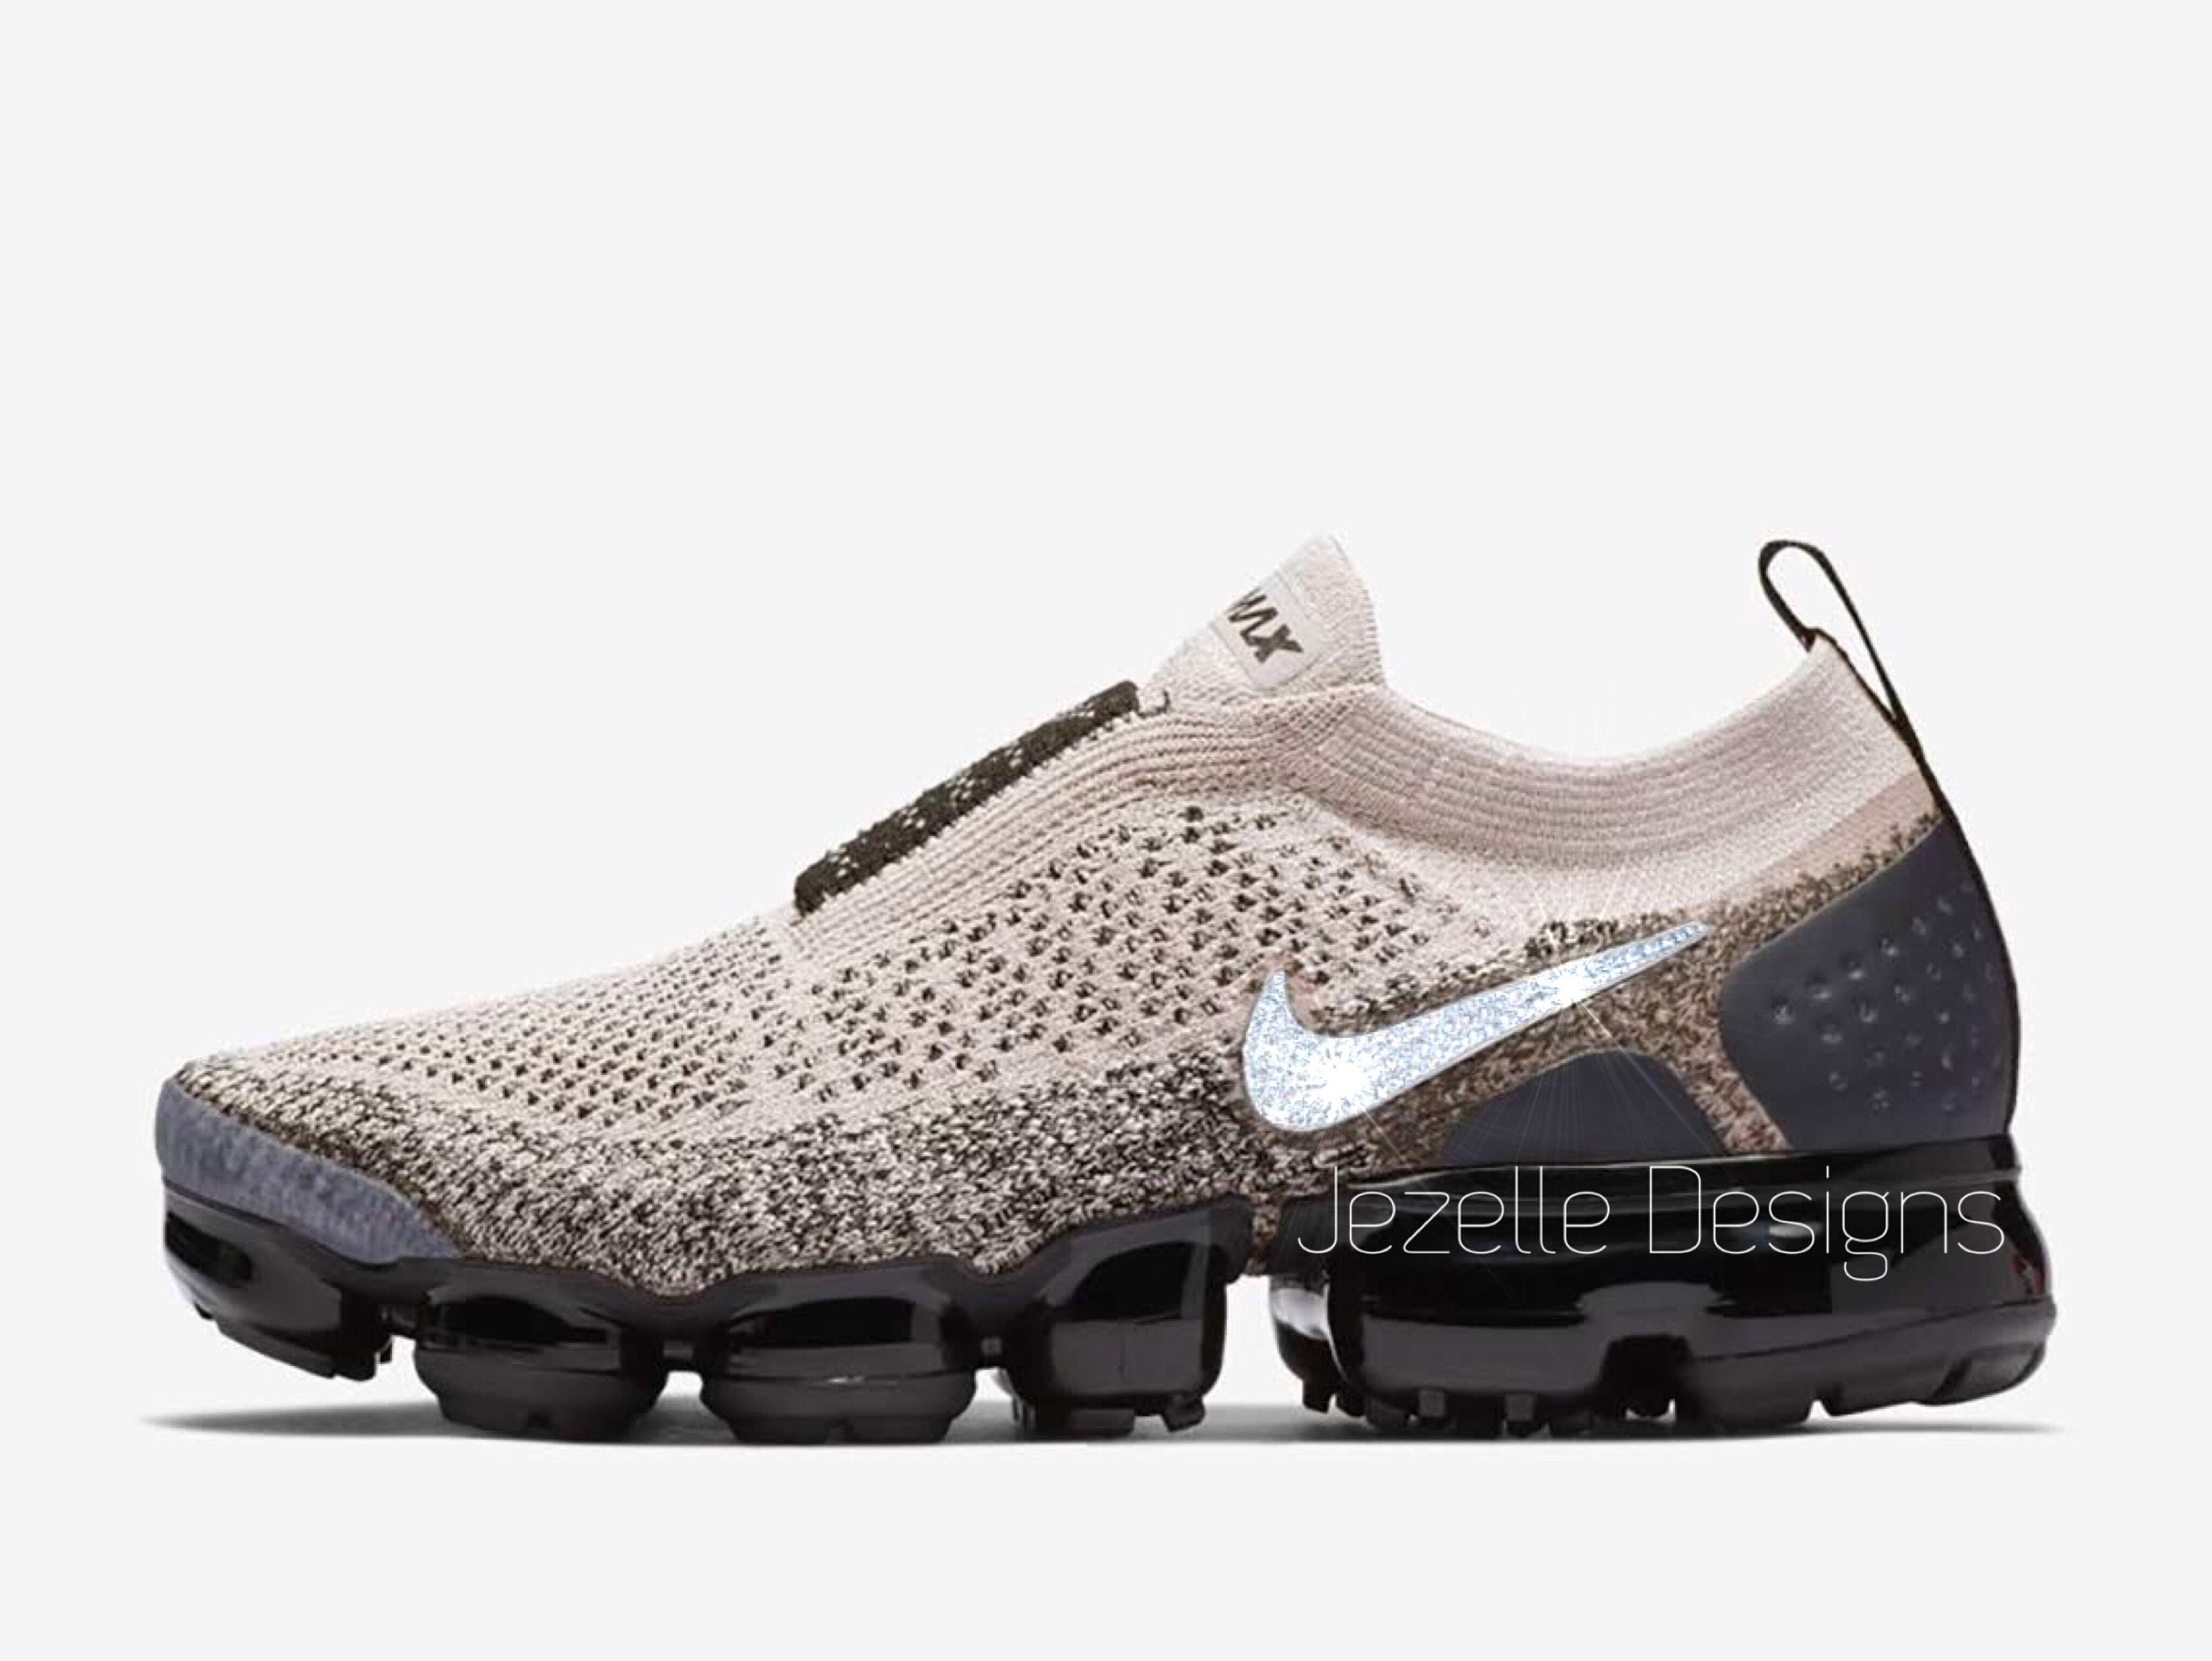 19699534fcf Swarovski Nike Air VaporMax Flyknit MOC 2 Running Shoes Custom